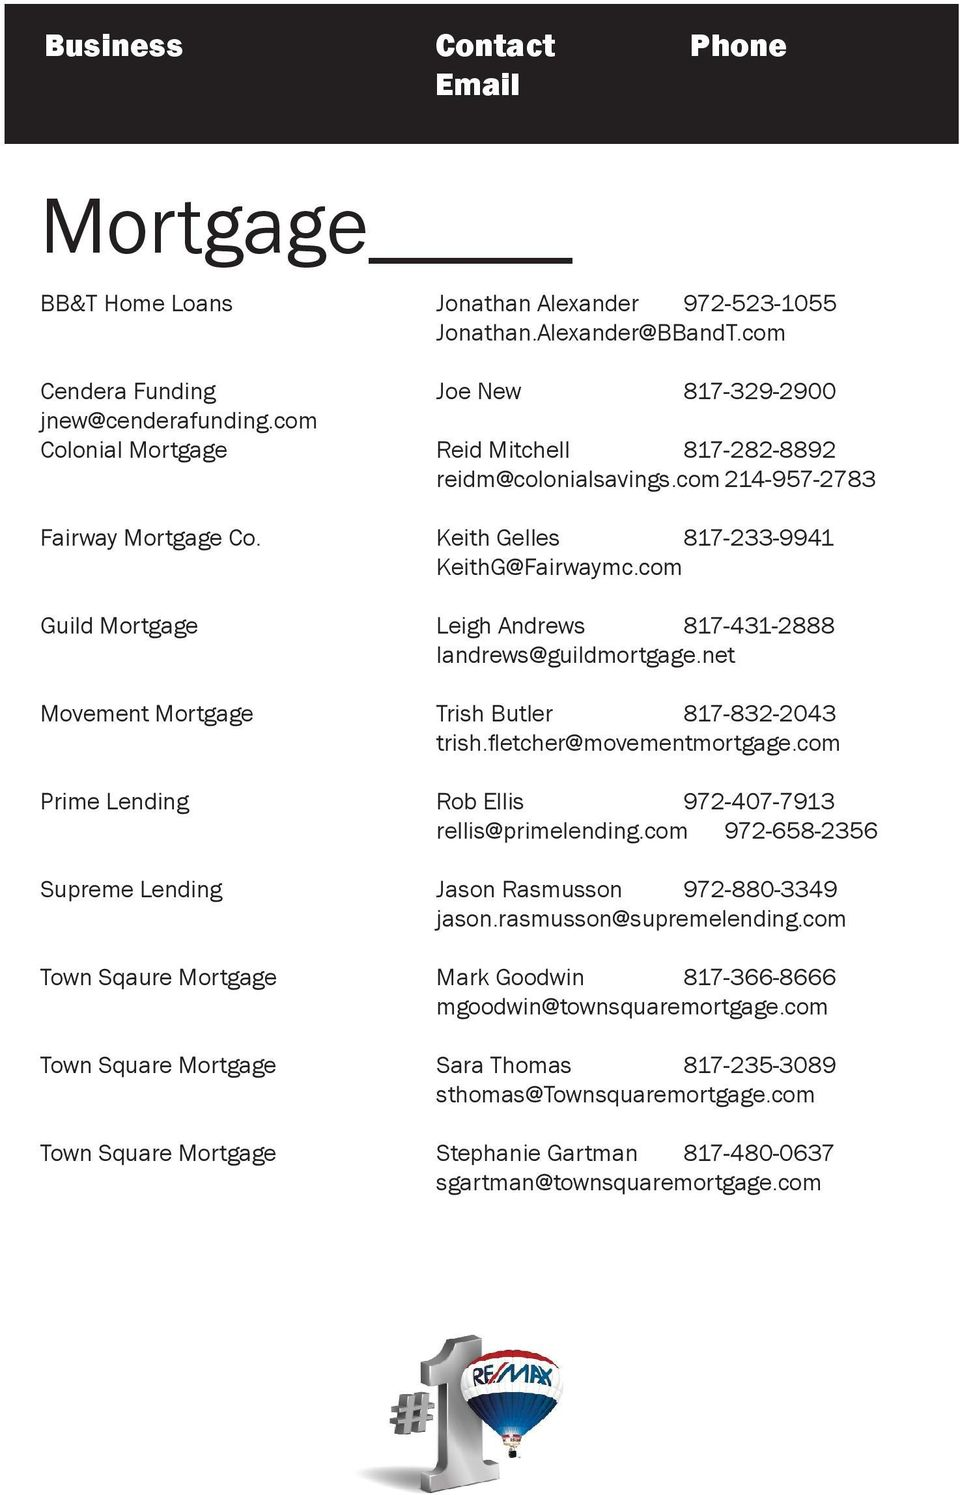 com Guild Mortgage Leigh Andrews 817-431-2888 landrews@guildmortgage.net Movement Mortgage Trish Butler 817-832-2043 trish.fletcher@movementmortgage.